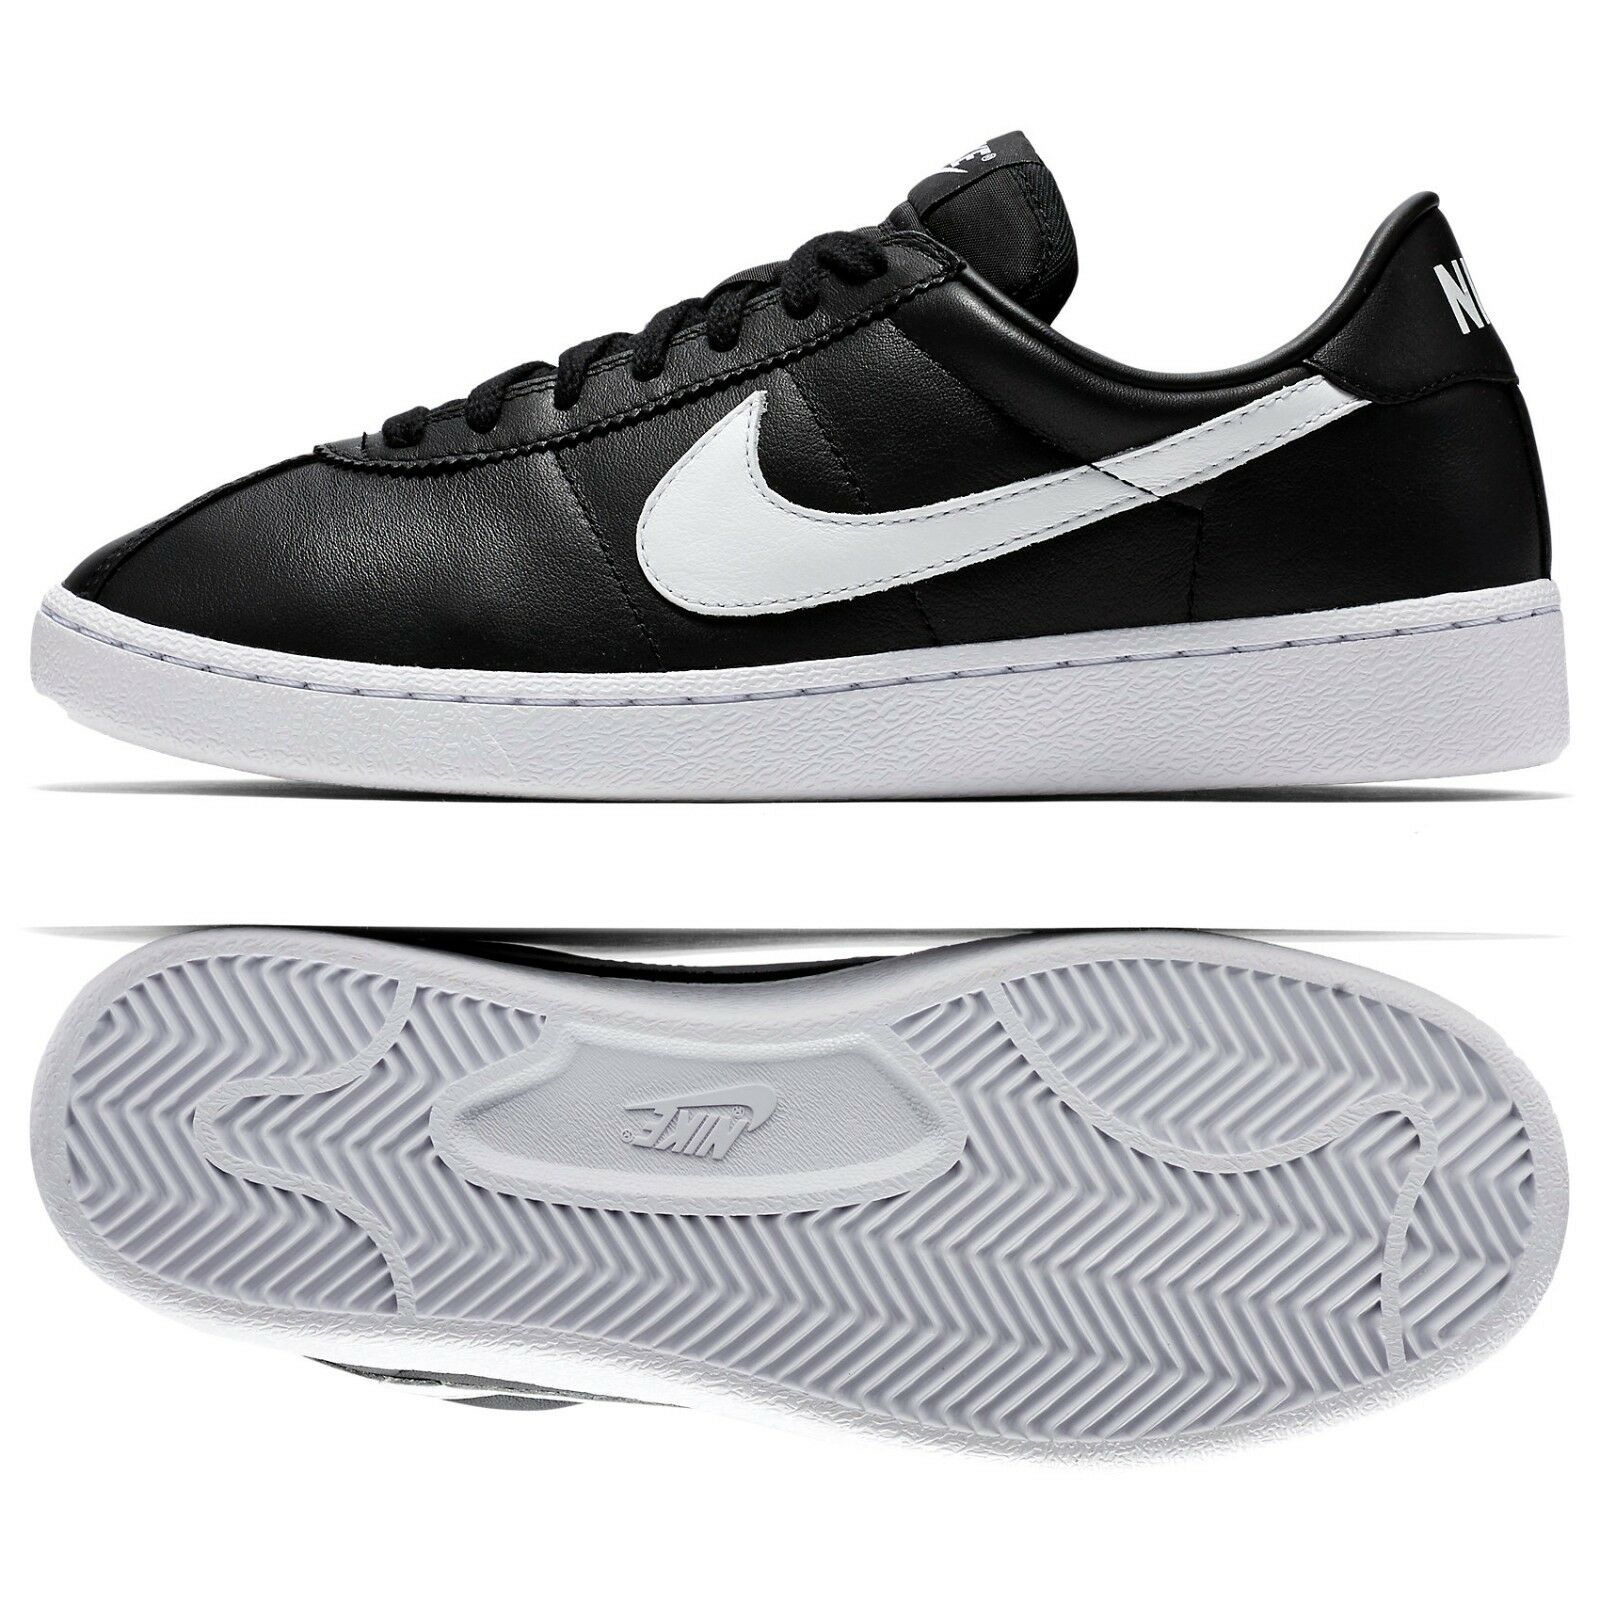 Nike Bruin QS Leather '70s 842956-001 Black/White Swoosh Men's Shoes